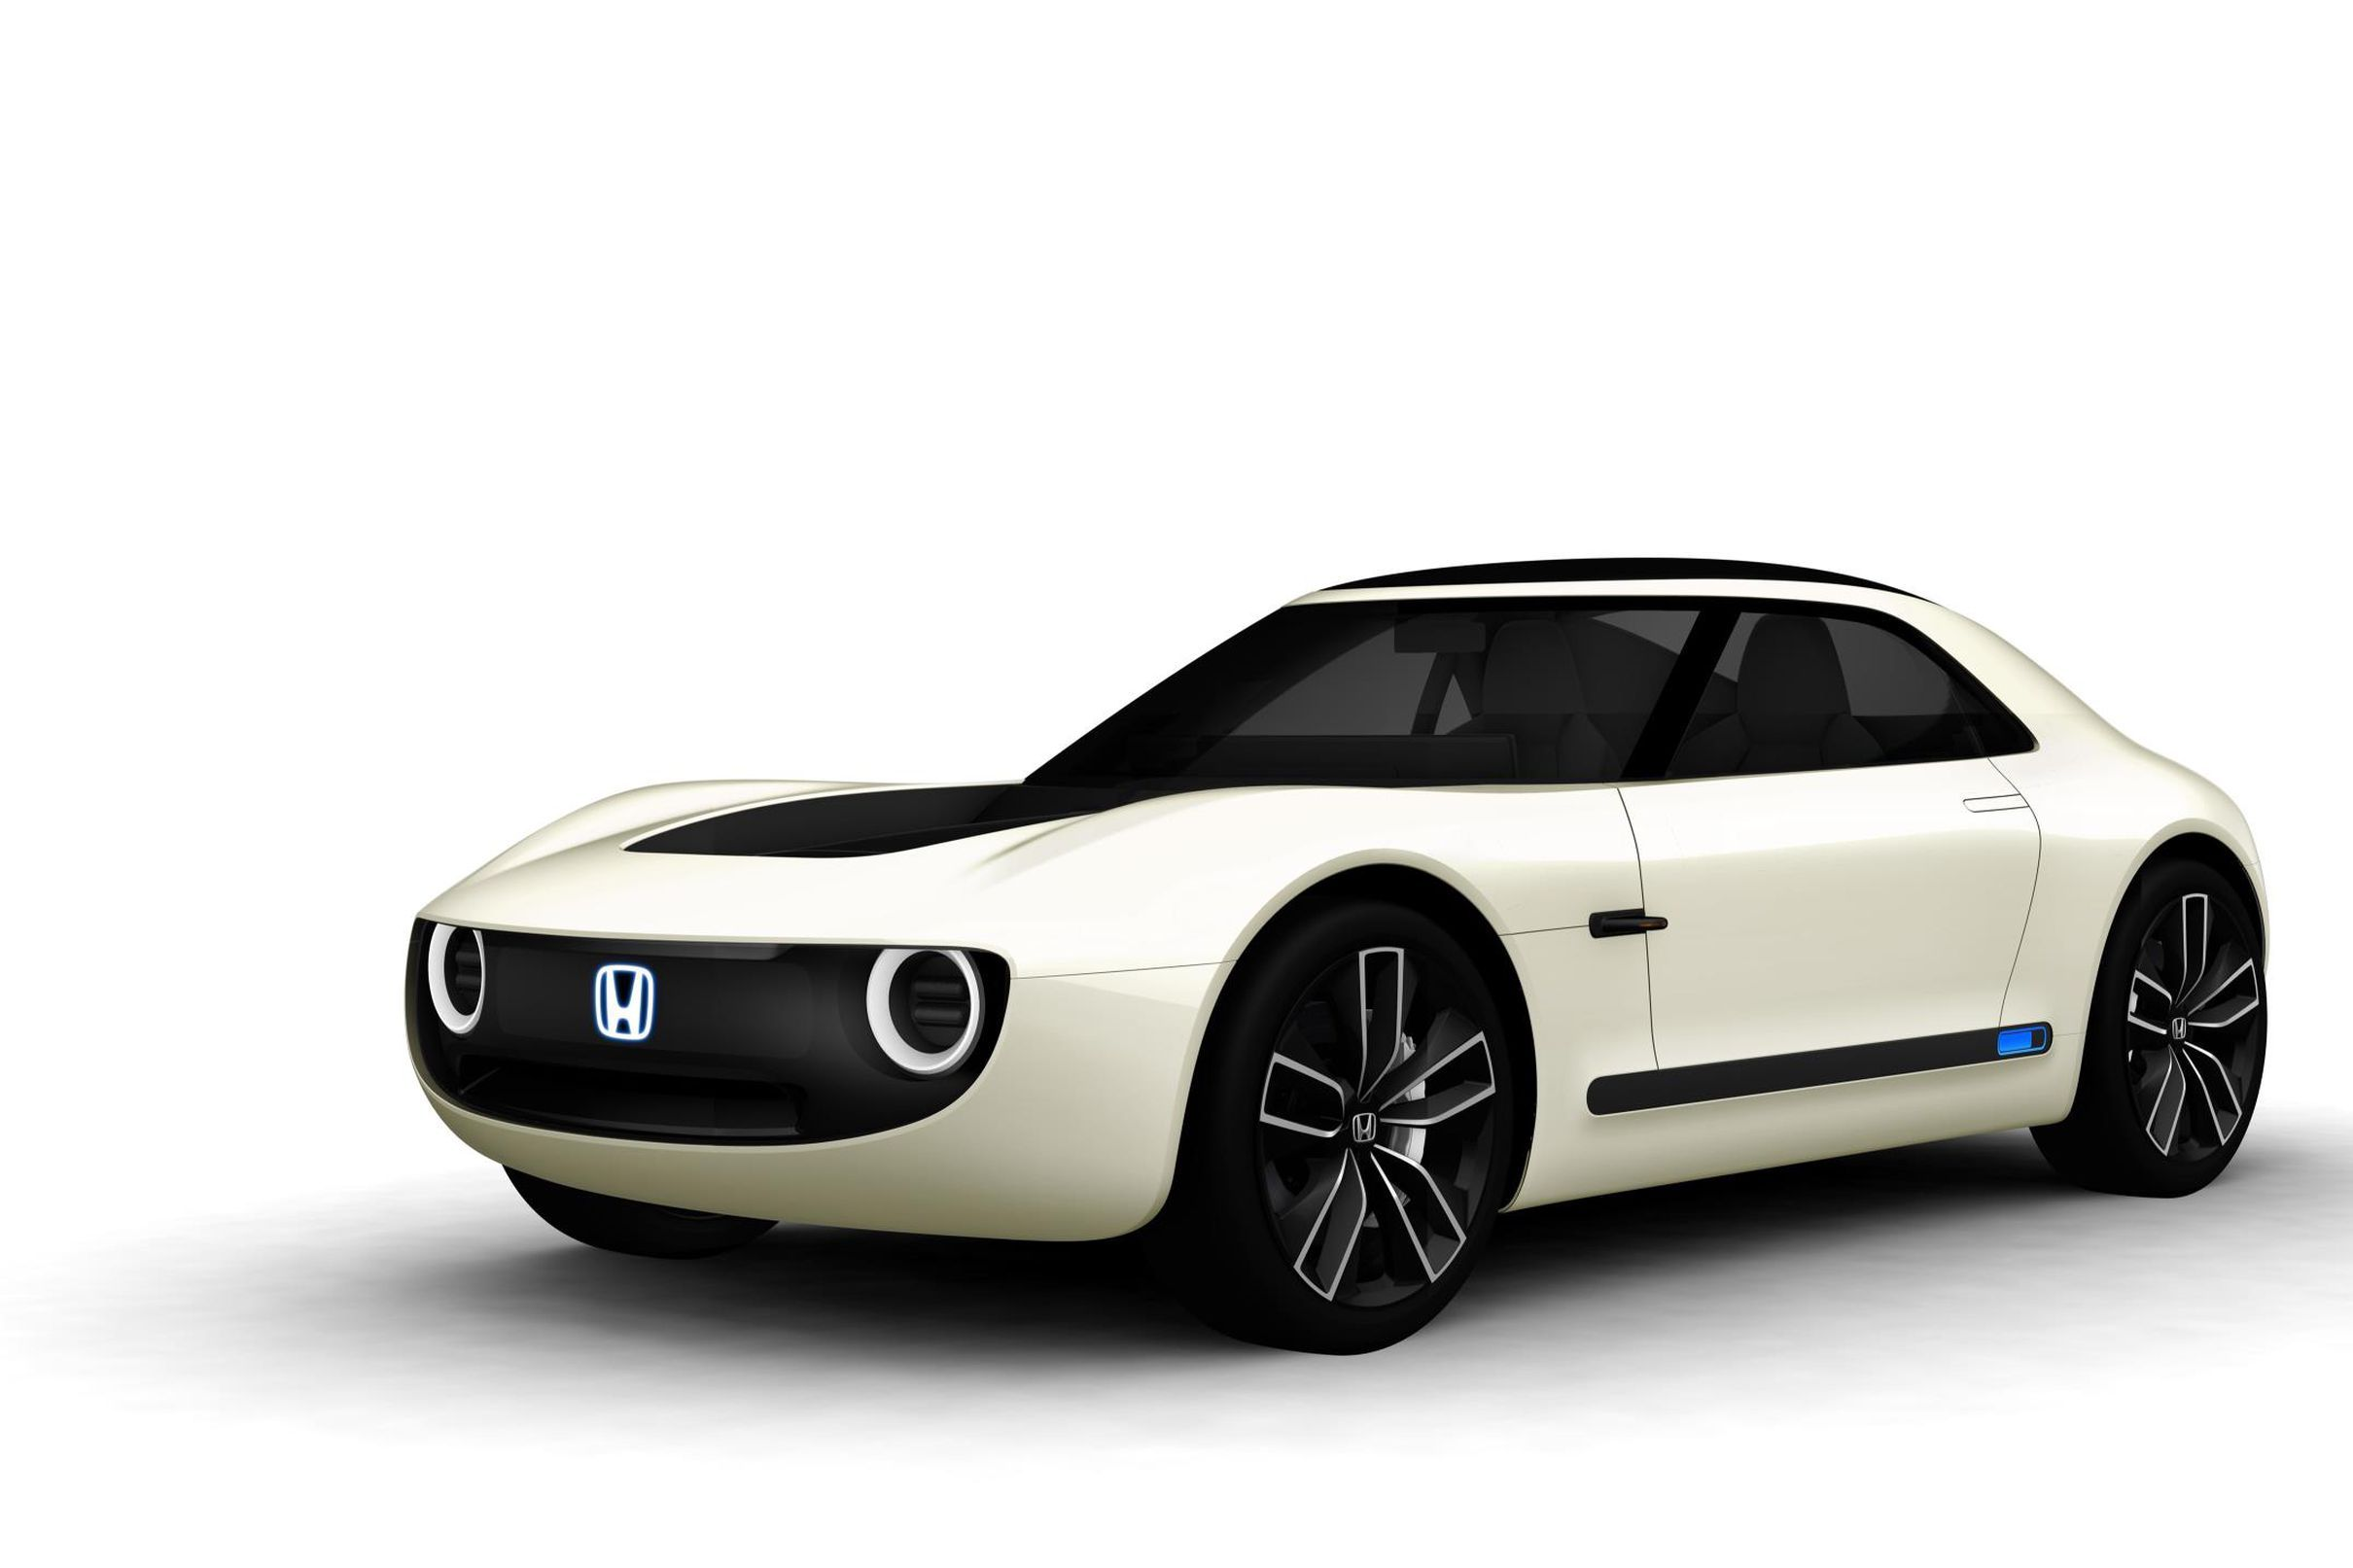 Sports Ev Is Second Electric Concept With Ai The Automaker Has Shown This Year